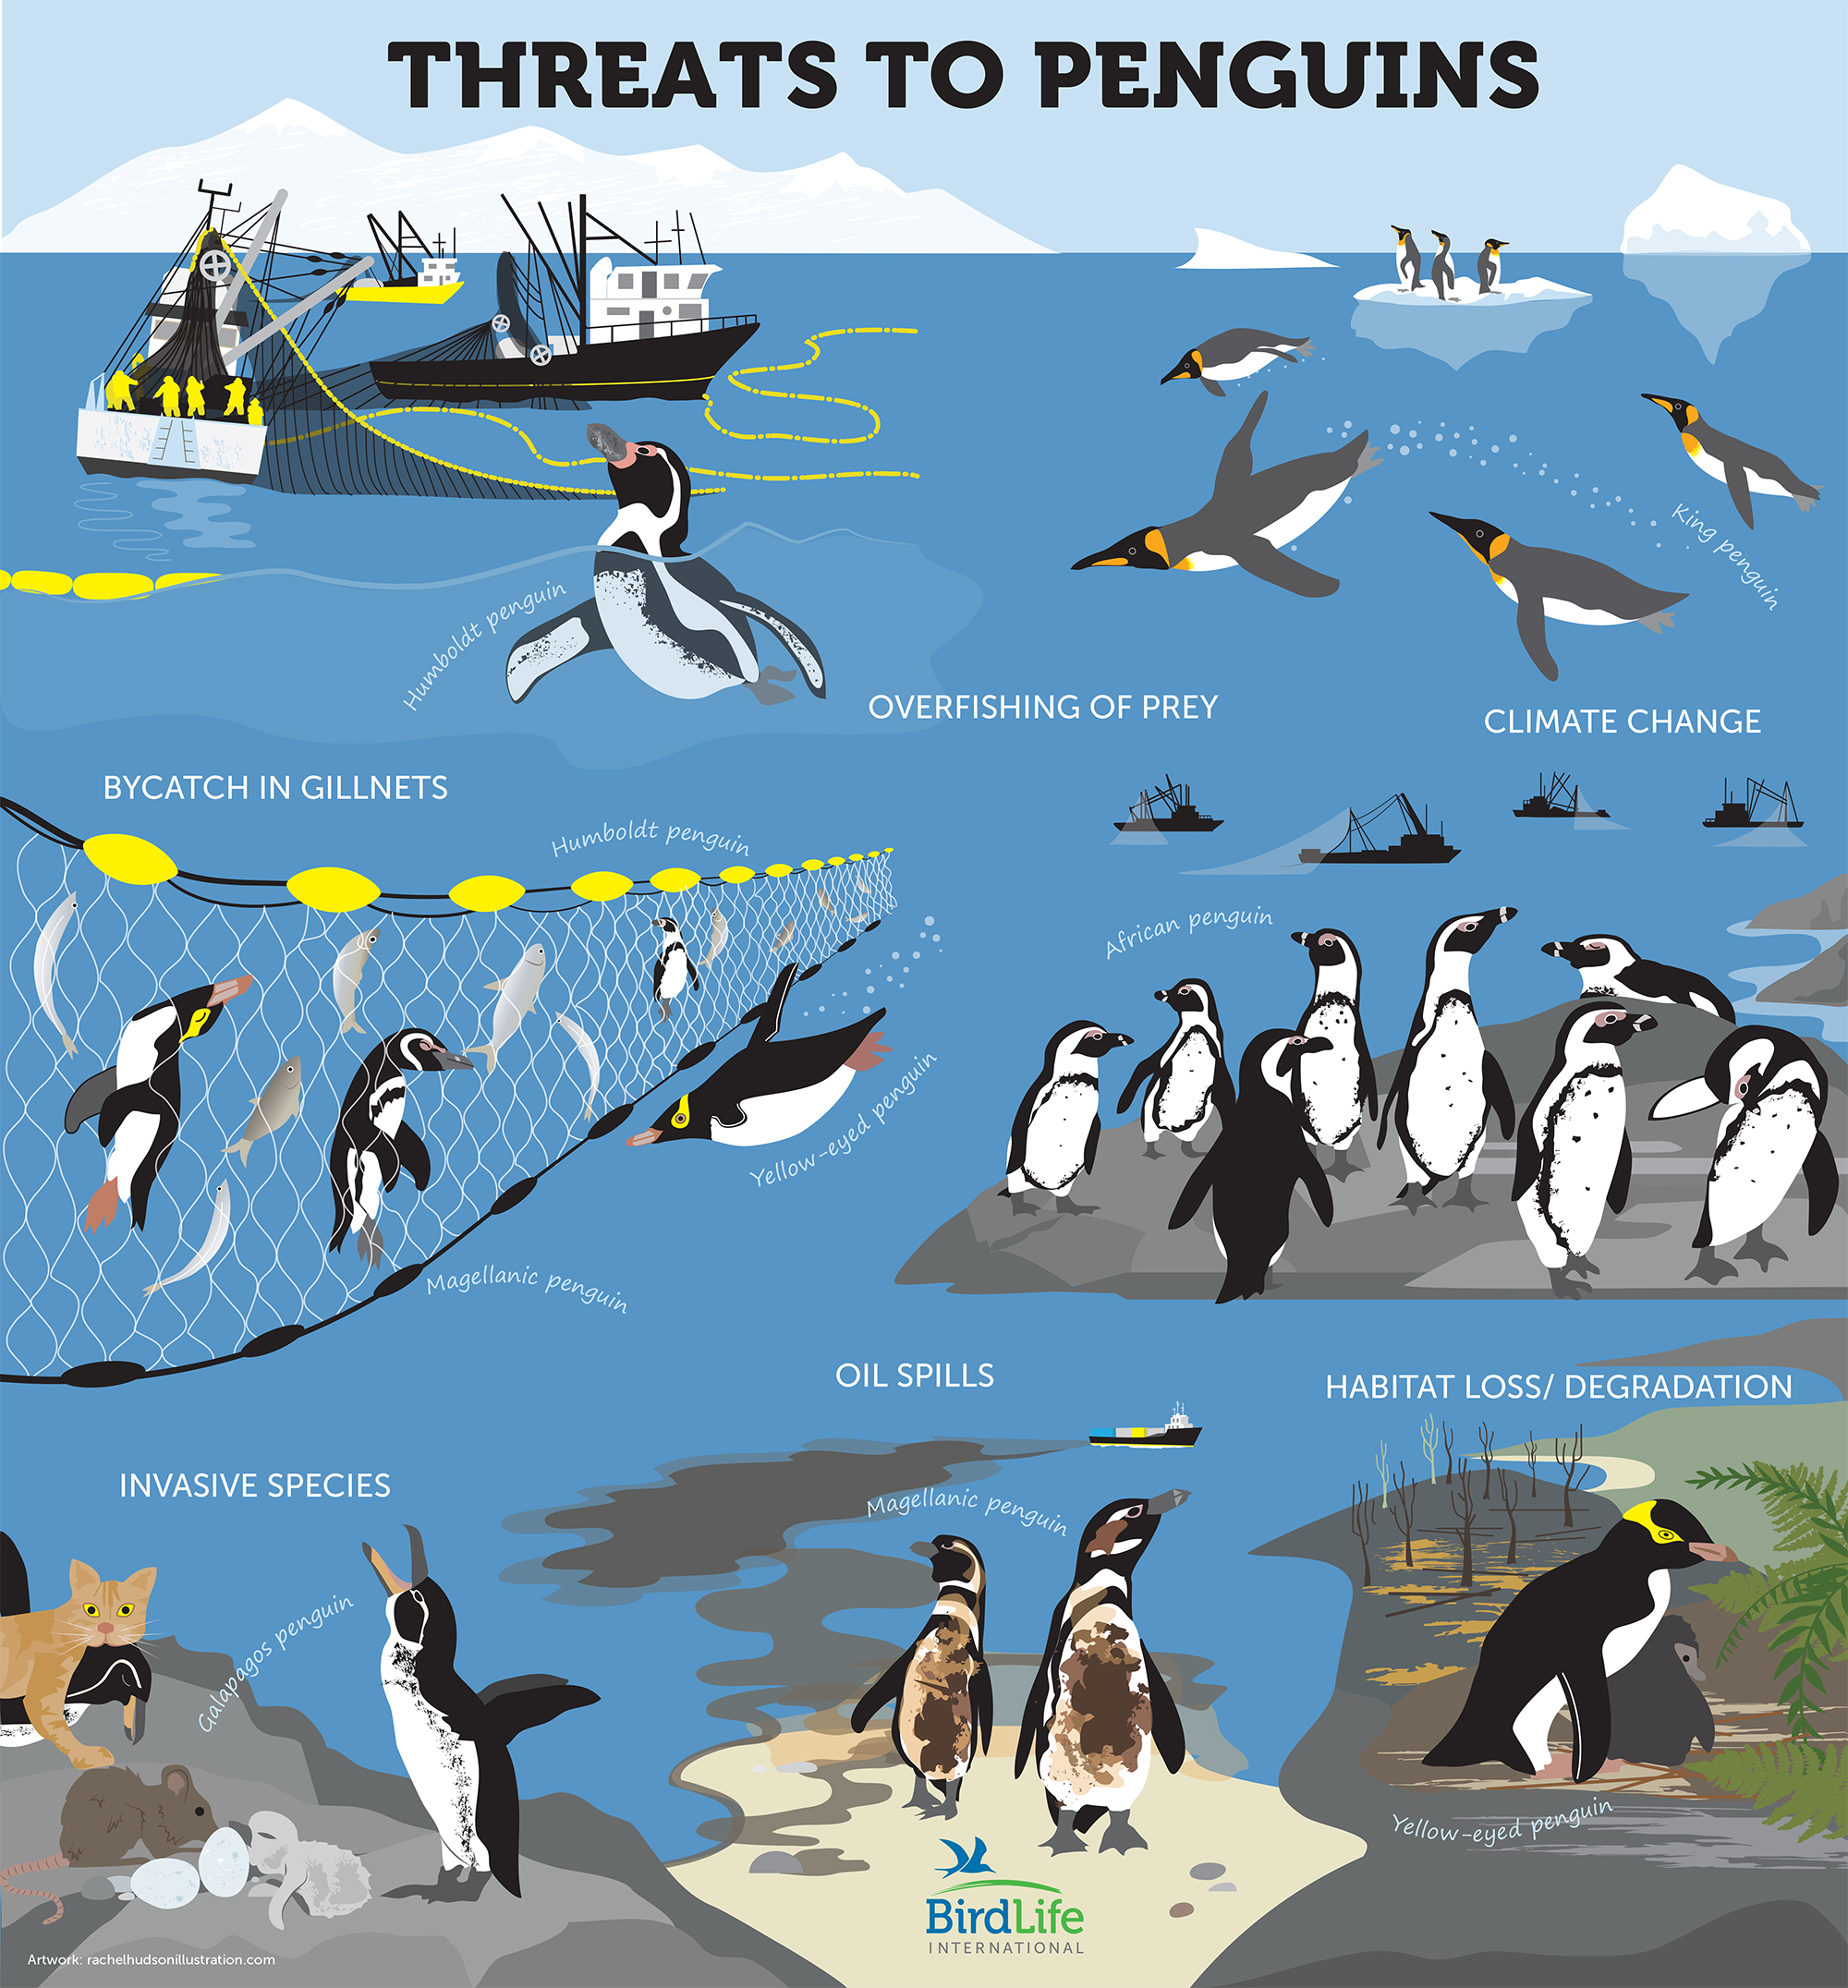 Threats to Penguins final rachelhudsonillustration